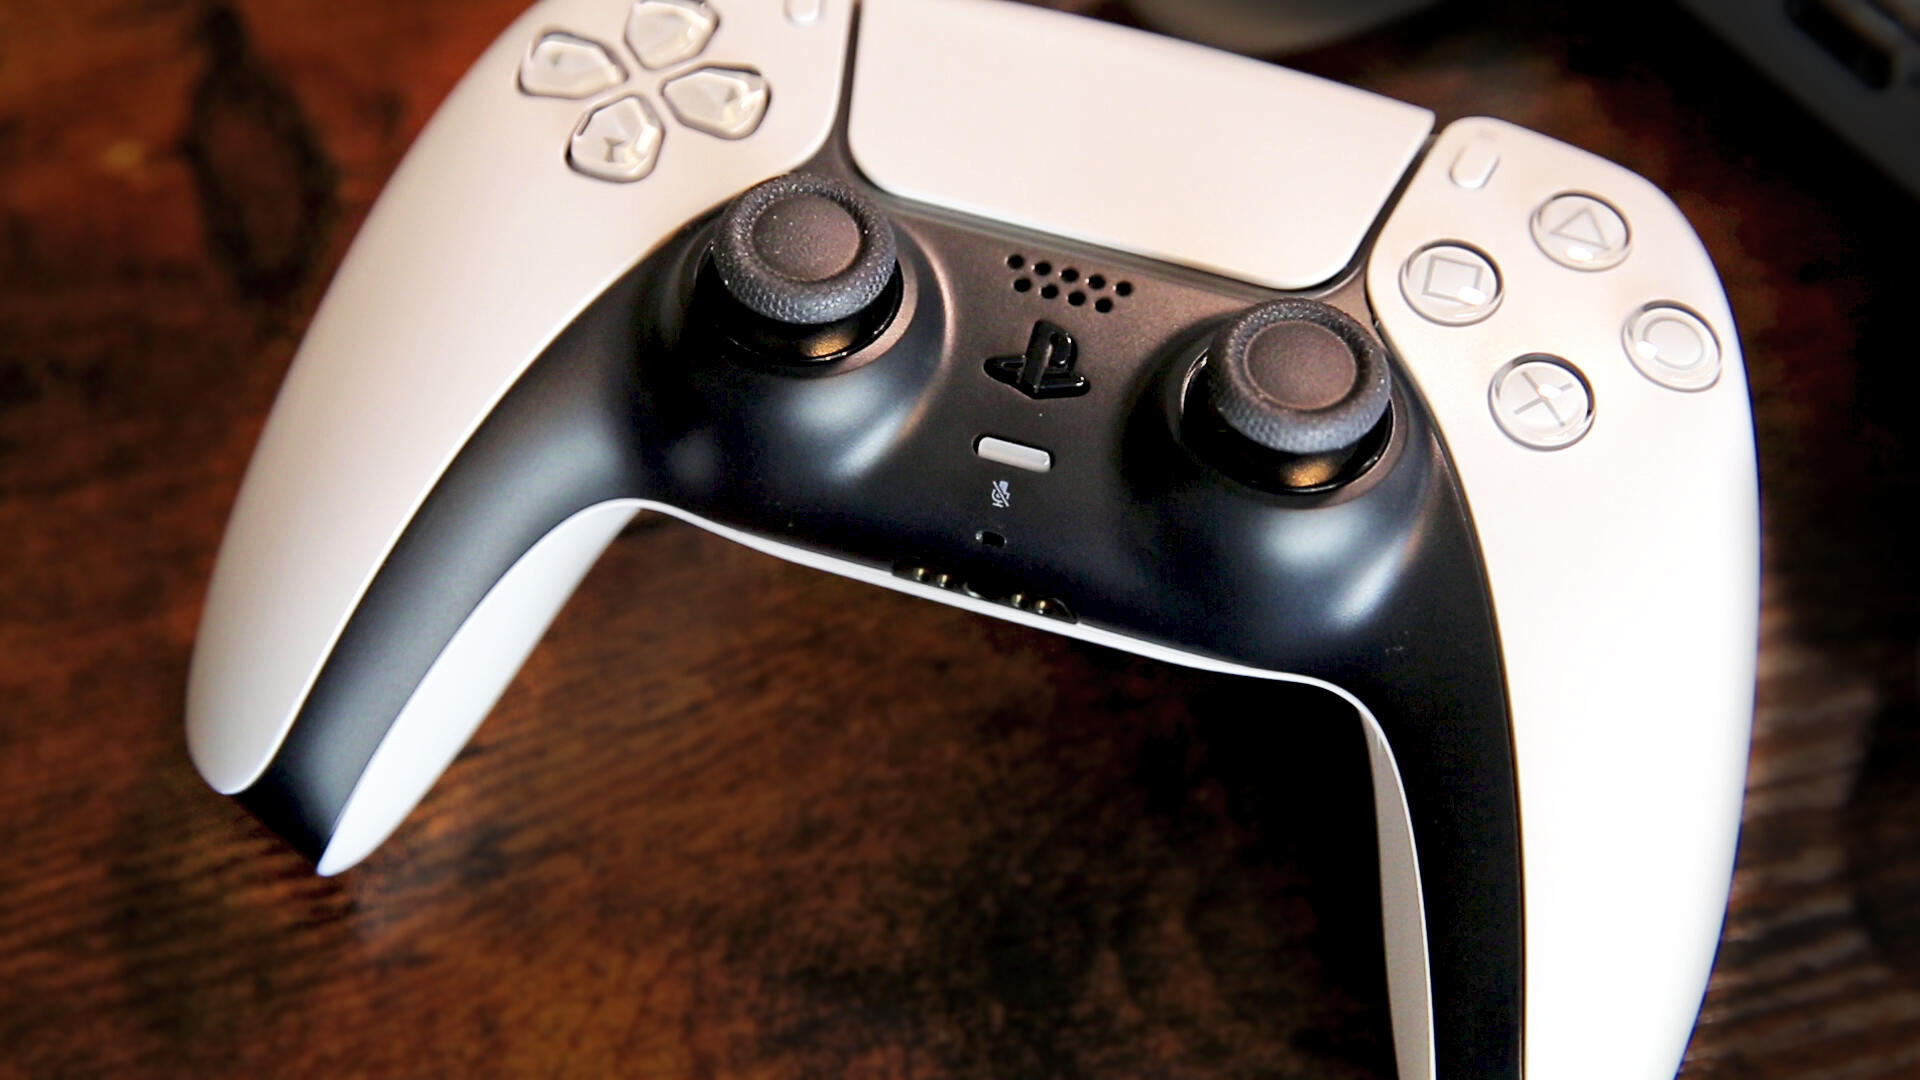 Video: The PS5's DualSense is a surprising reinvention of the PlayStation controller